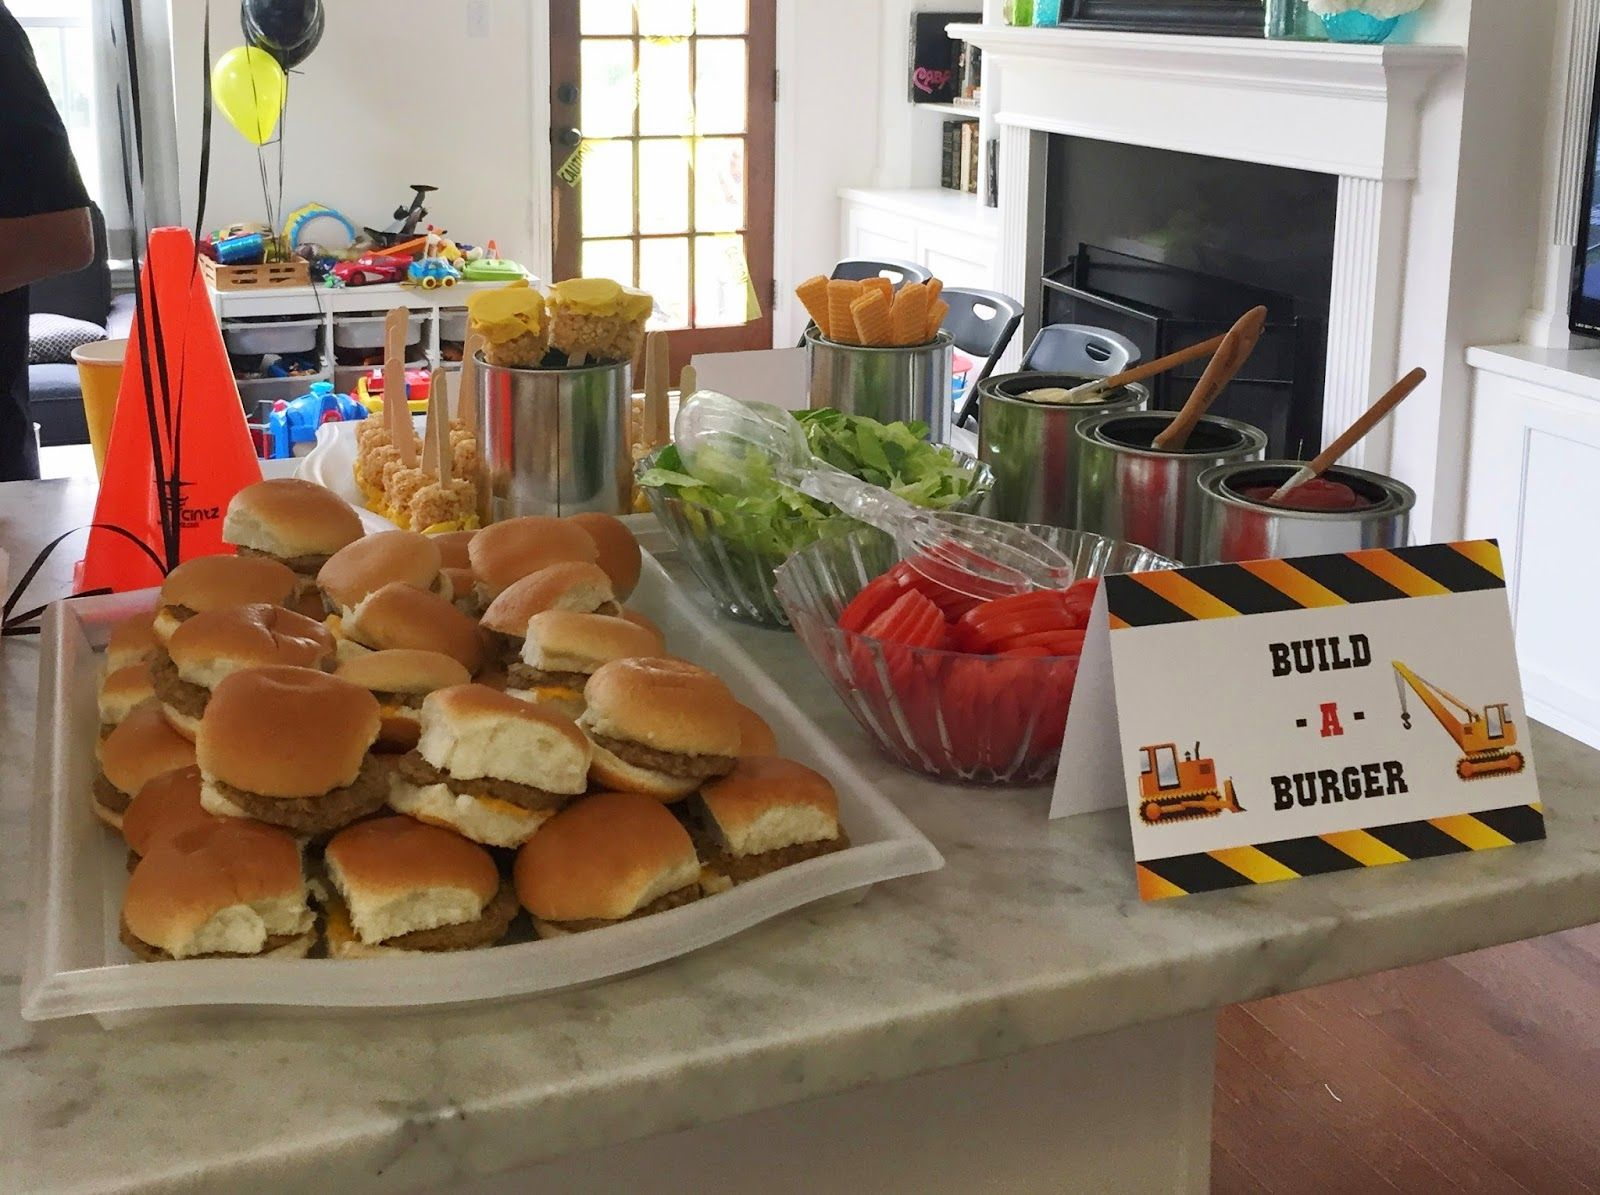 Build A Burger Food Station For Construction Themed Birthday Party See